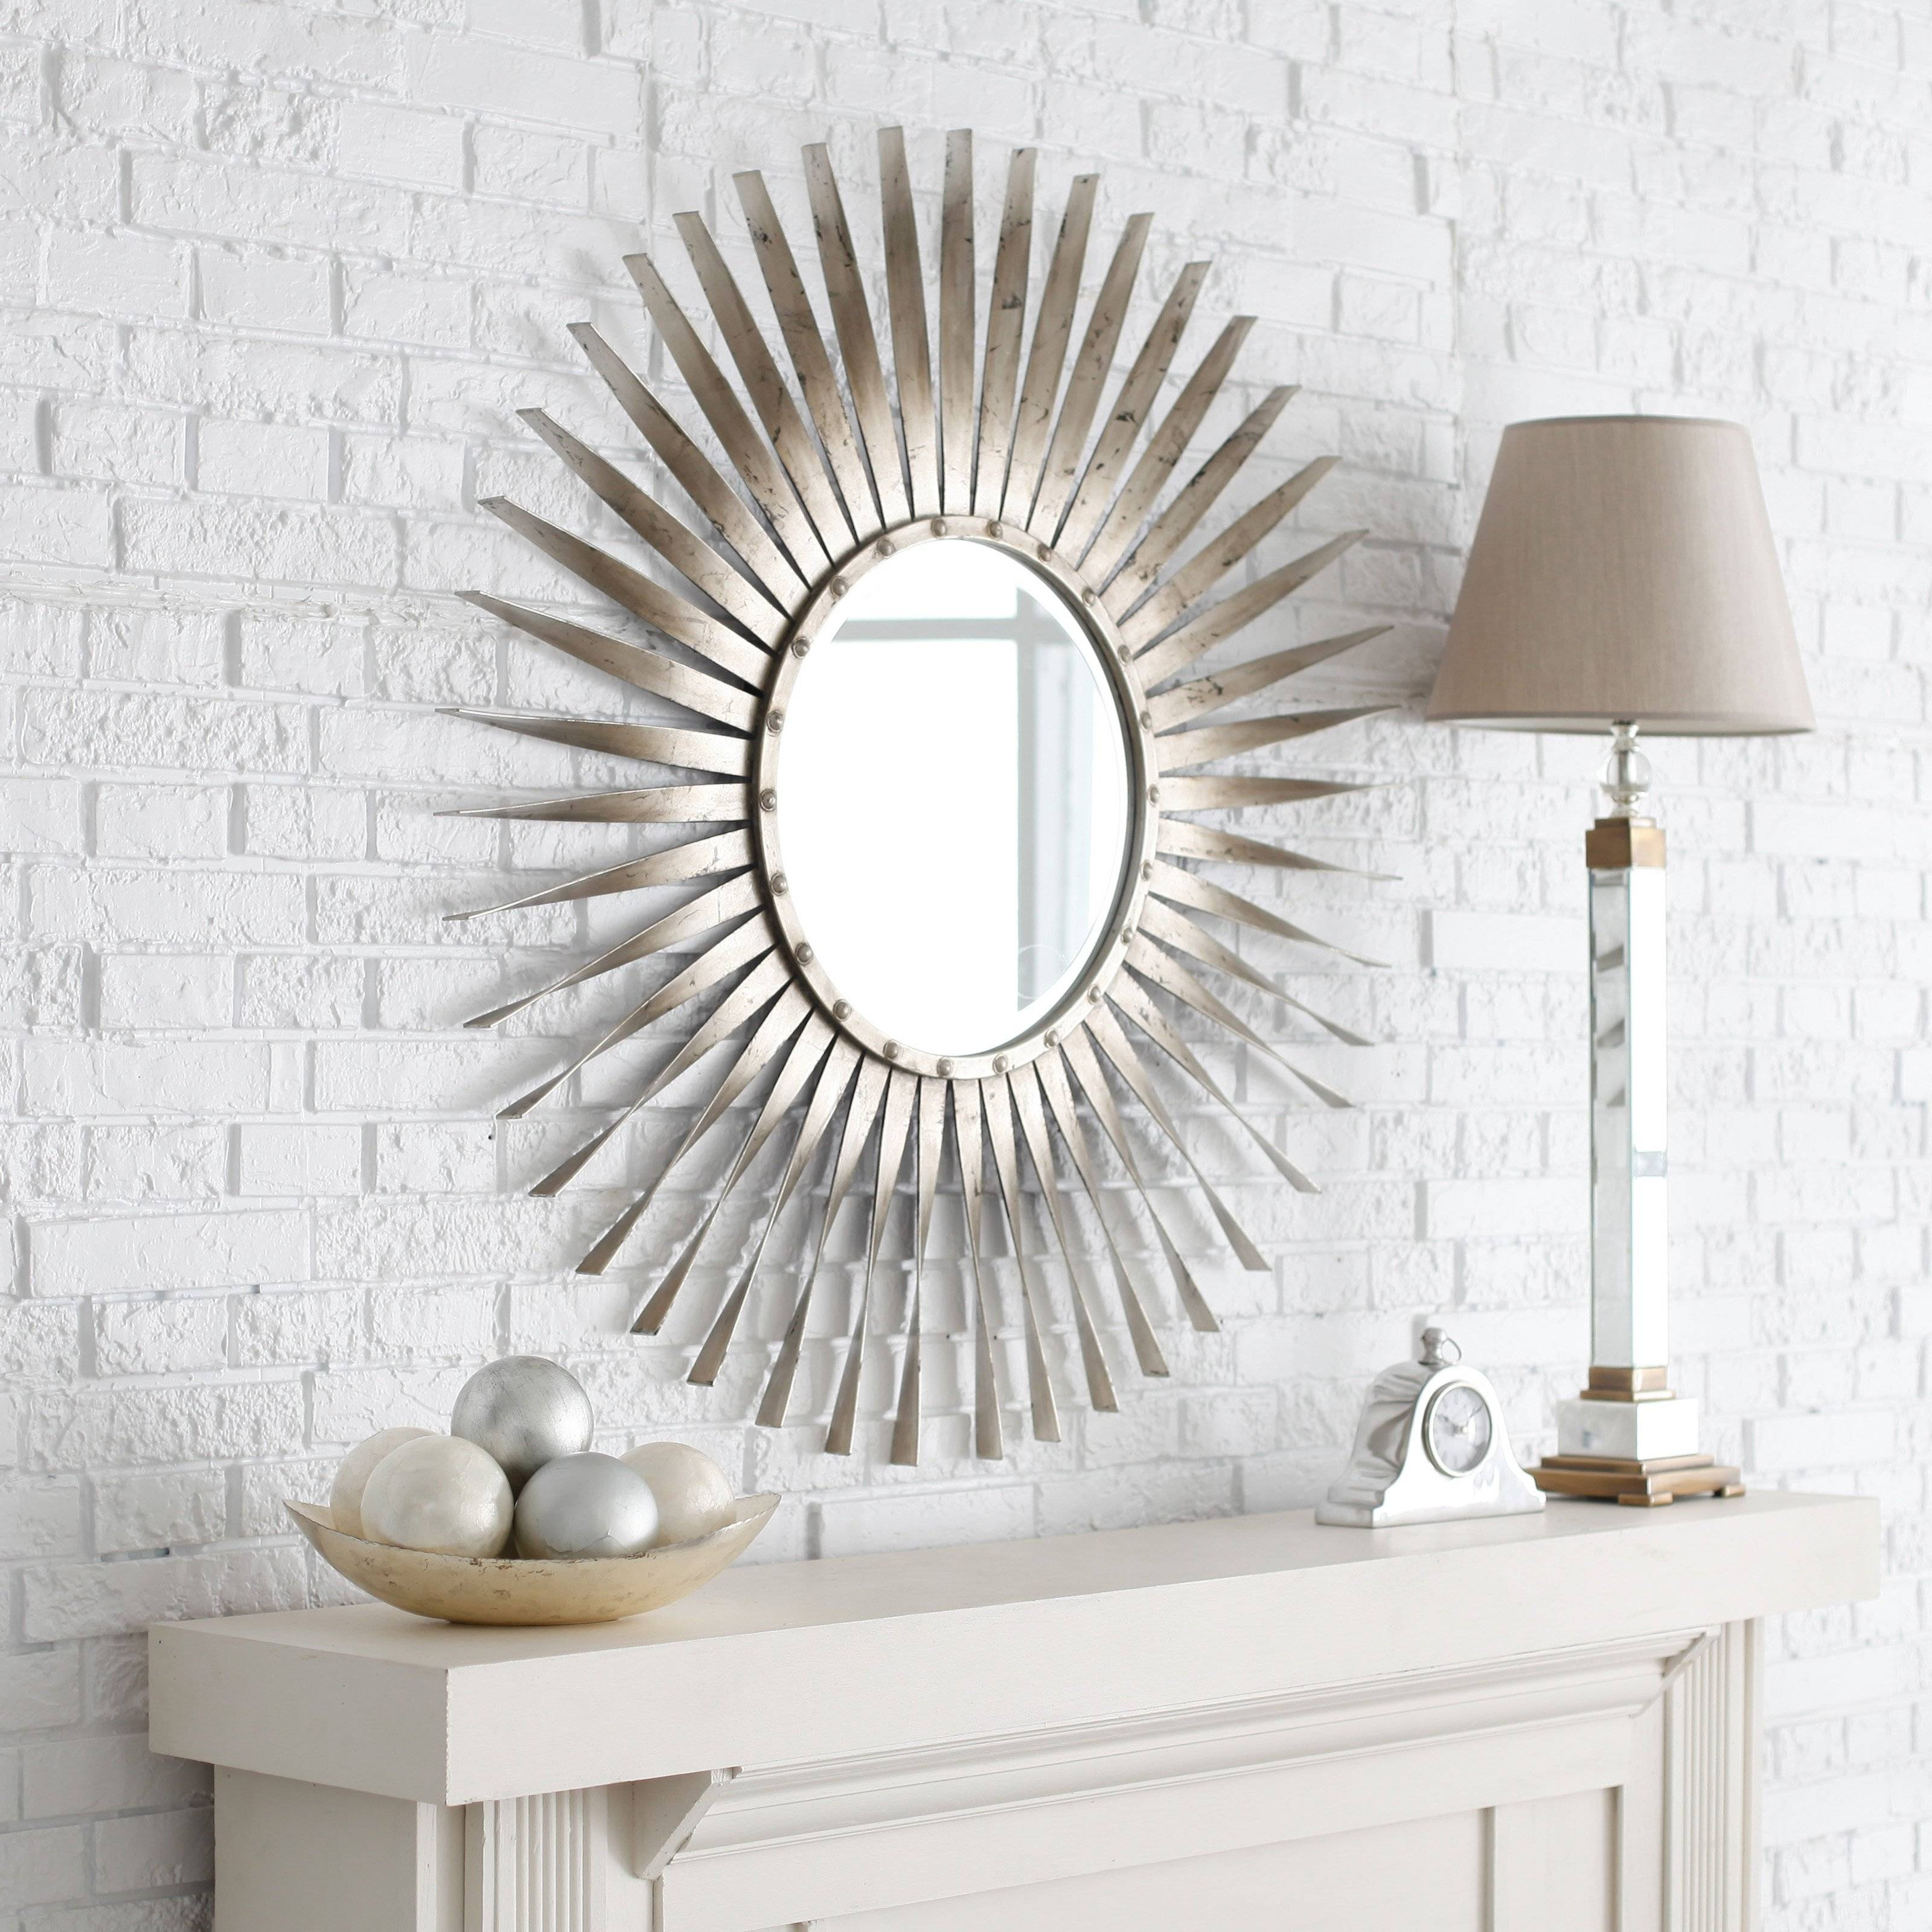 Decorating: Gold Sunburst Mirror With Small Circle Mirror For Wall inside Large Sunburst Mirrors (Image 3 of 25)